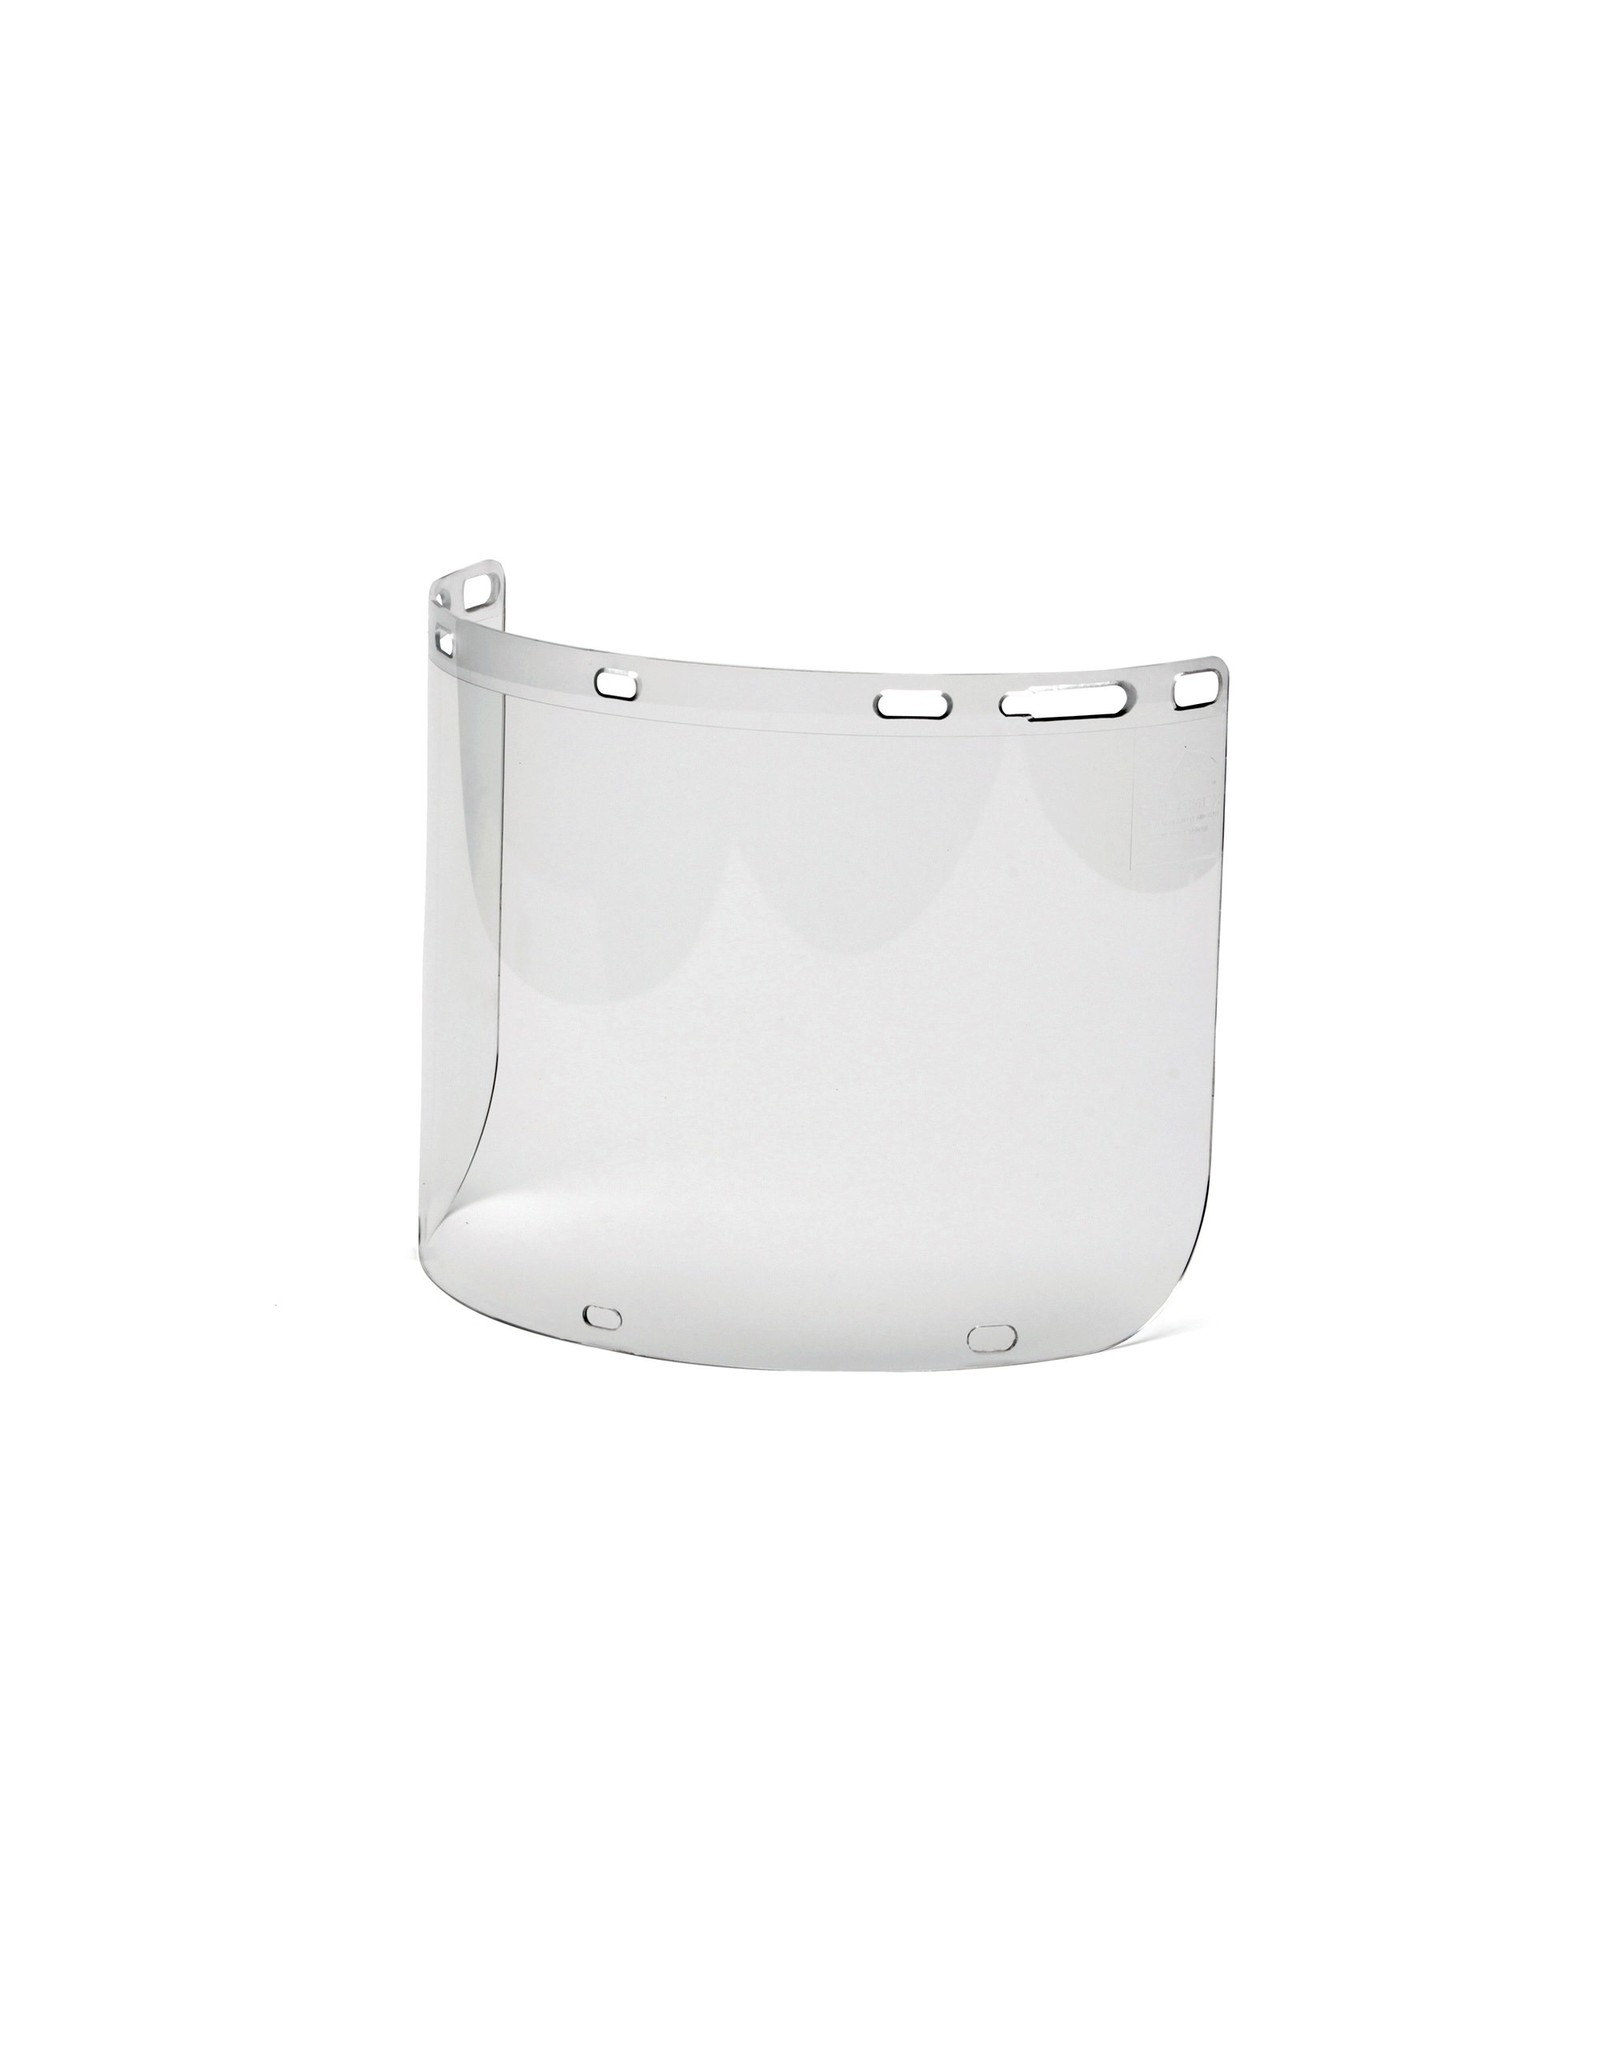 Pyramex Pyramex Cylindrical Polycarbonate Face Shield w/ Slots for Chin Cup